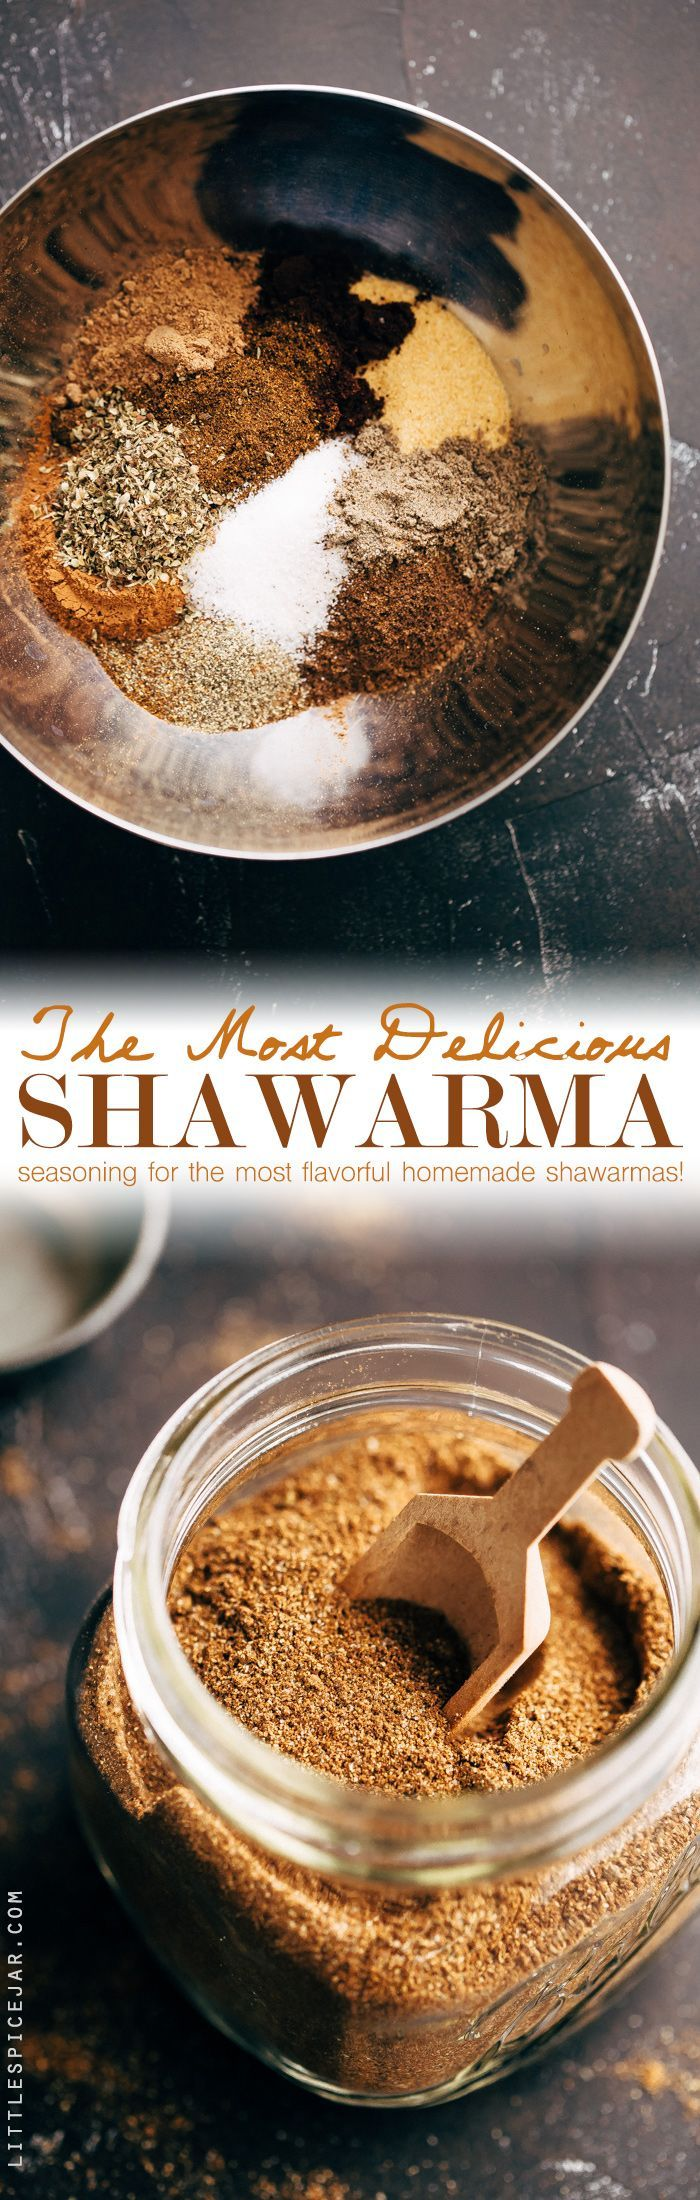 Most Delicious Homemade Shawarma Seasoning - an all purpose shawarma seasoning for chicken, beef, or roasted chickpeas! Make a big batch of this stuff and use it for things like shawarma bowls or wraps!